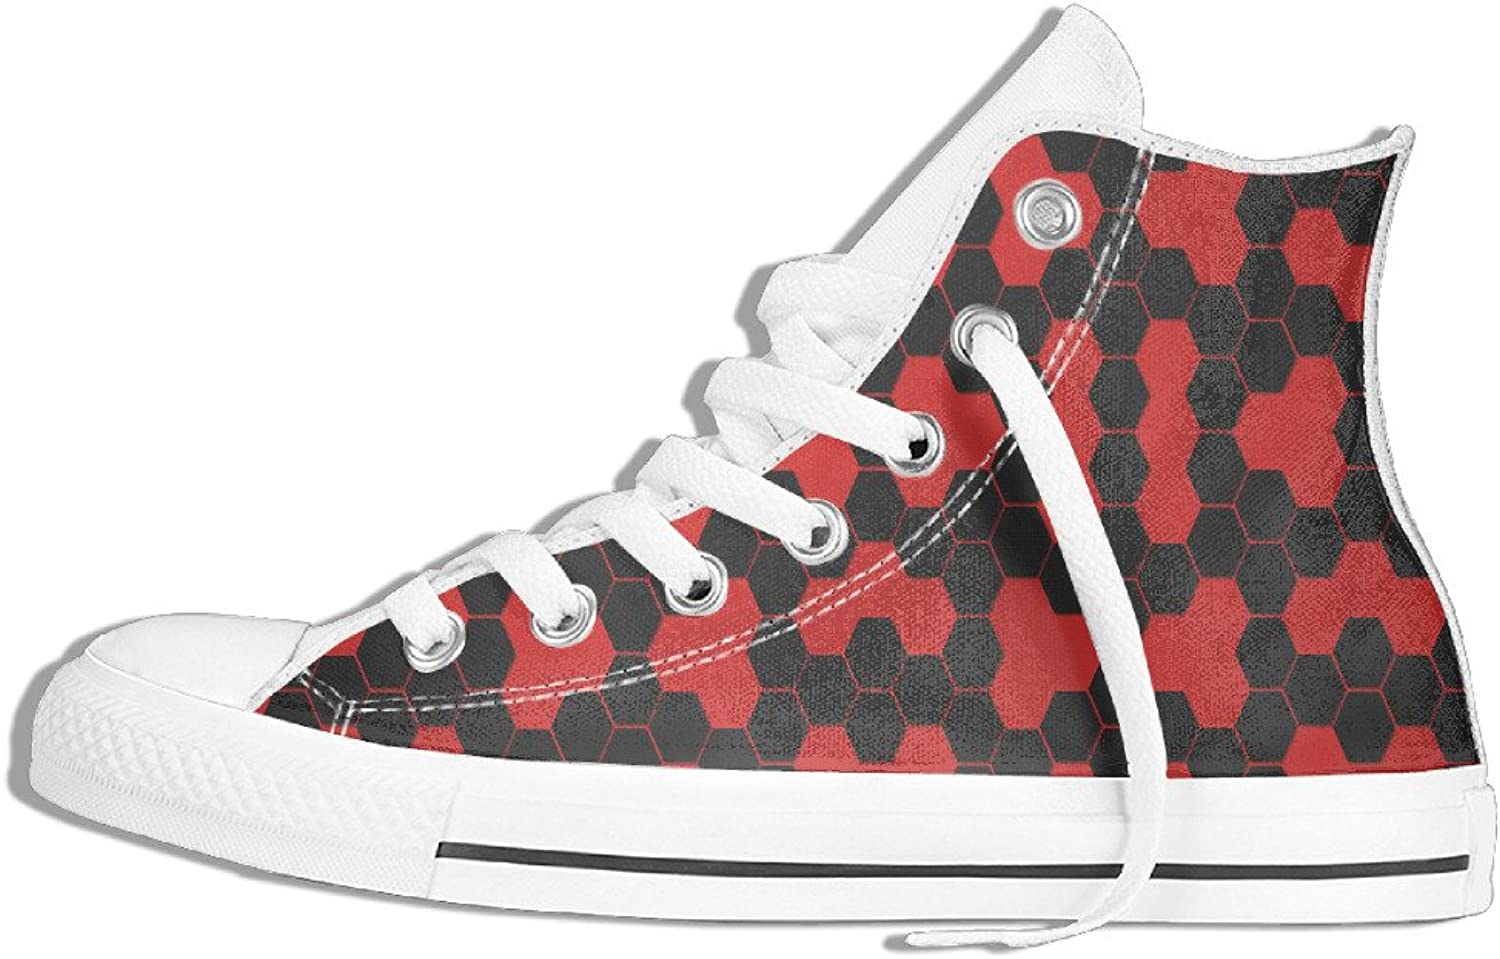 Efbj Red and Black Pentagon Unisex Sport High Top Sneakers shoes for Men and Women